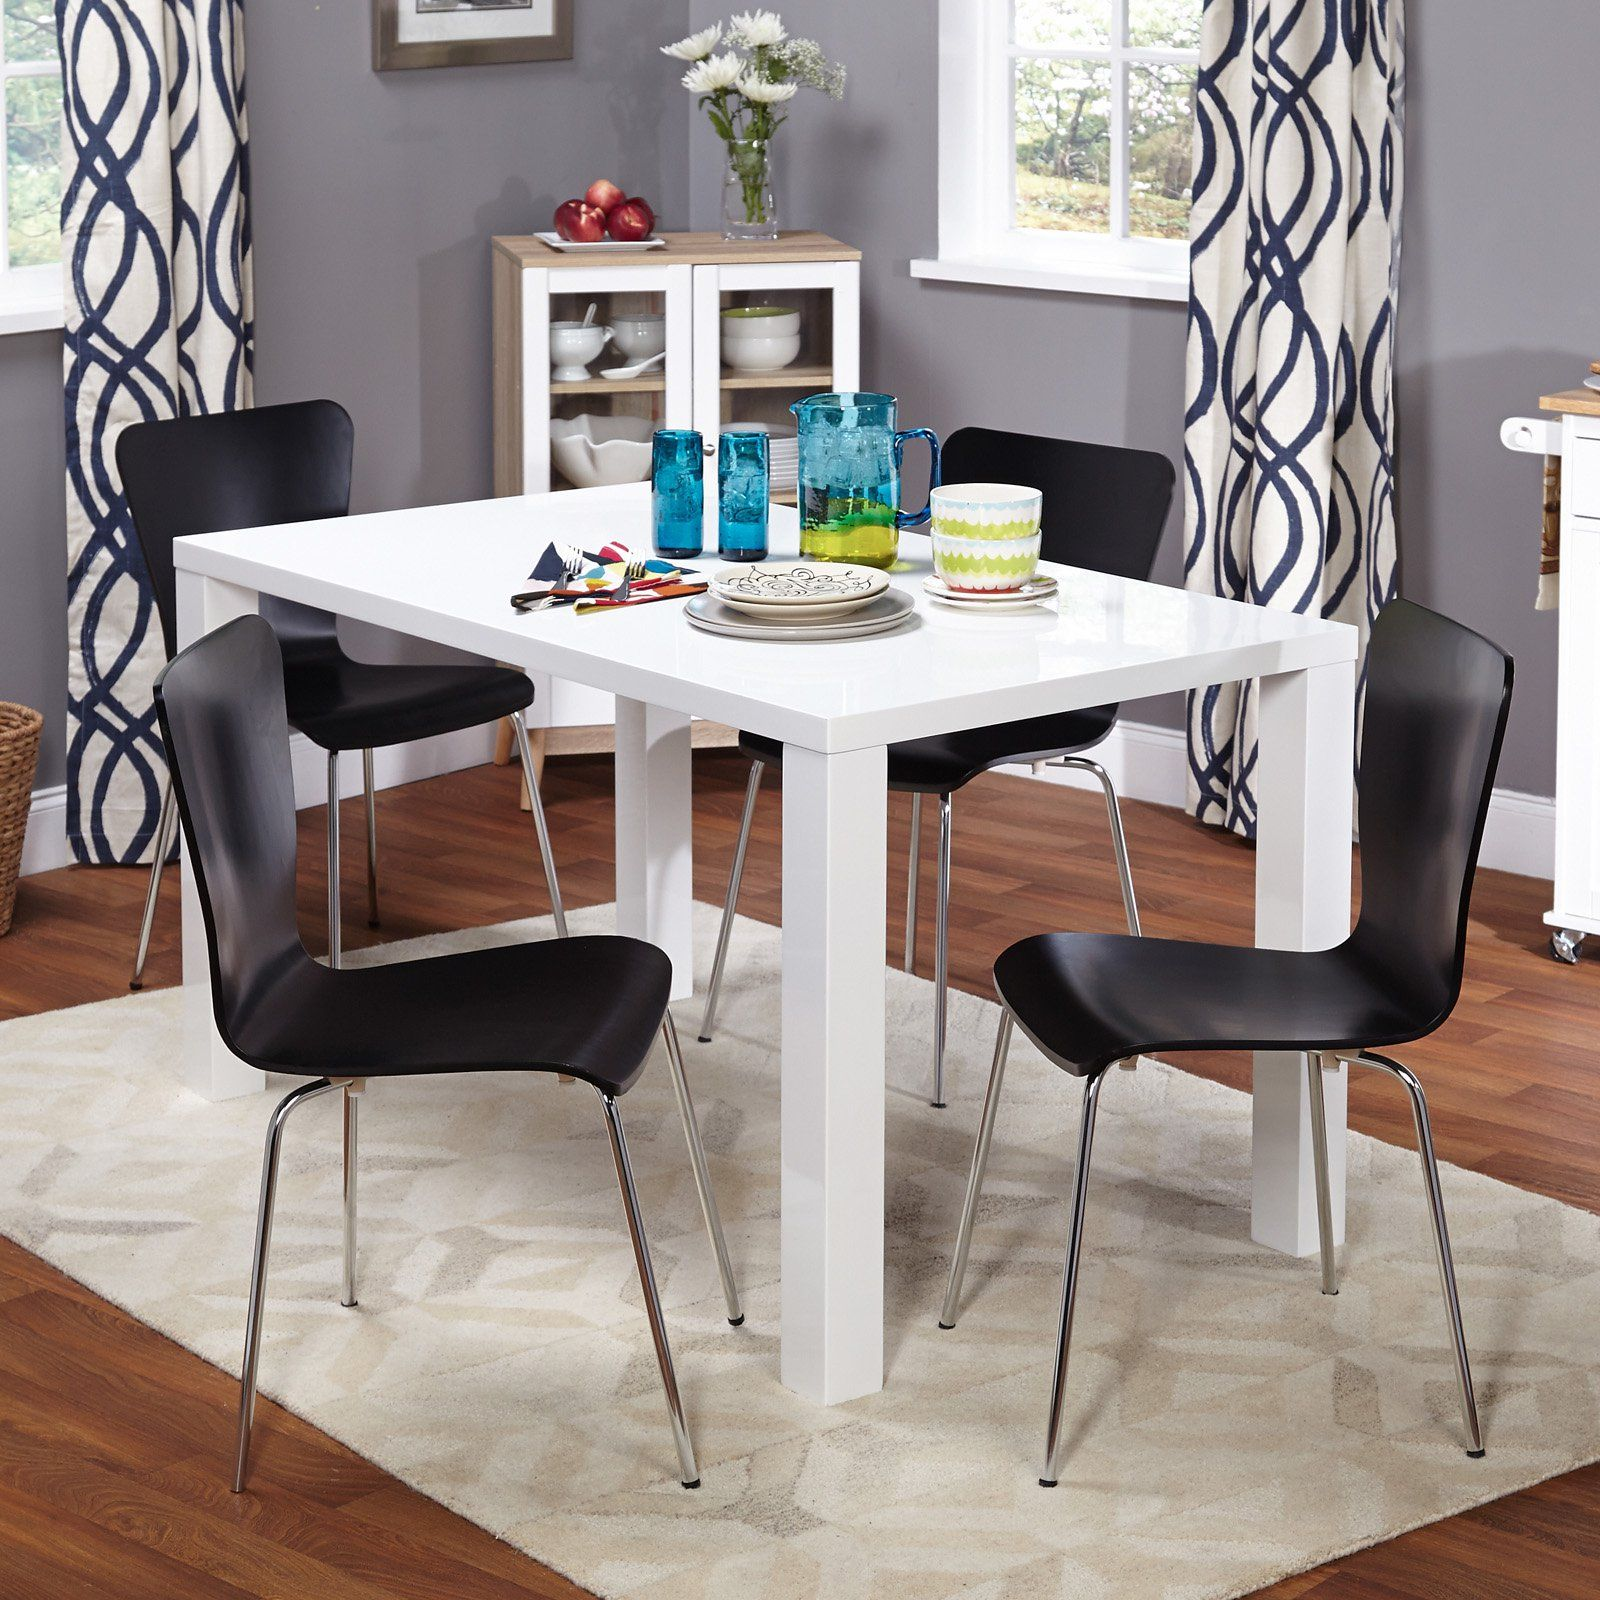 Target Marketing Systems Felix 5 Piece Dining Table Set ...